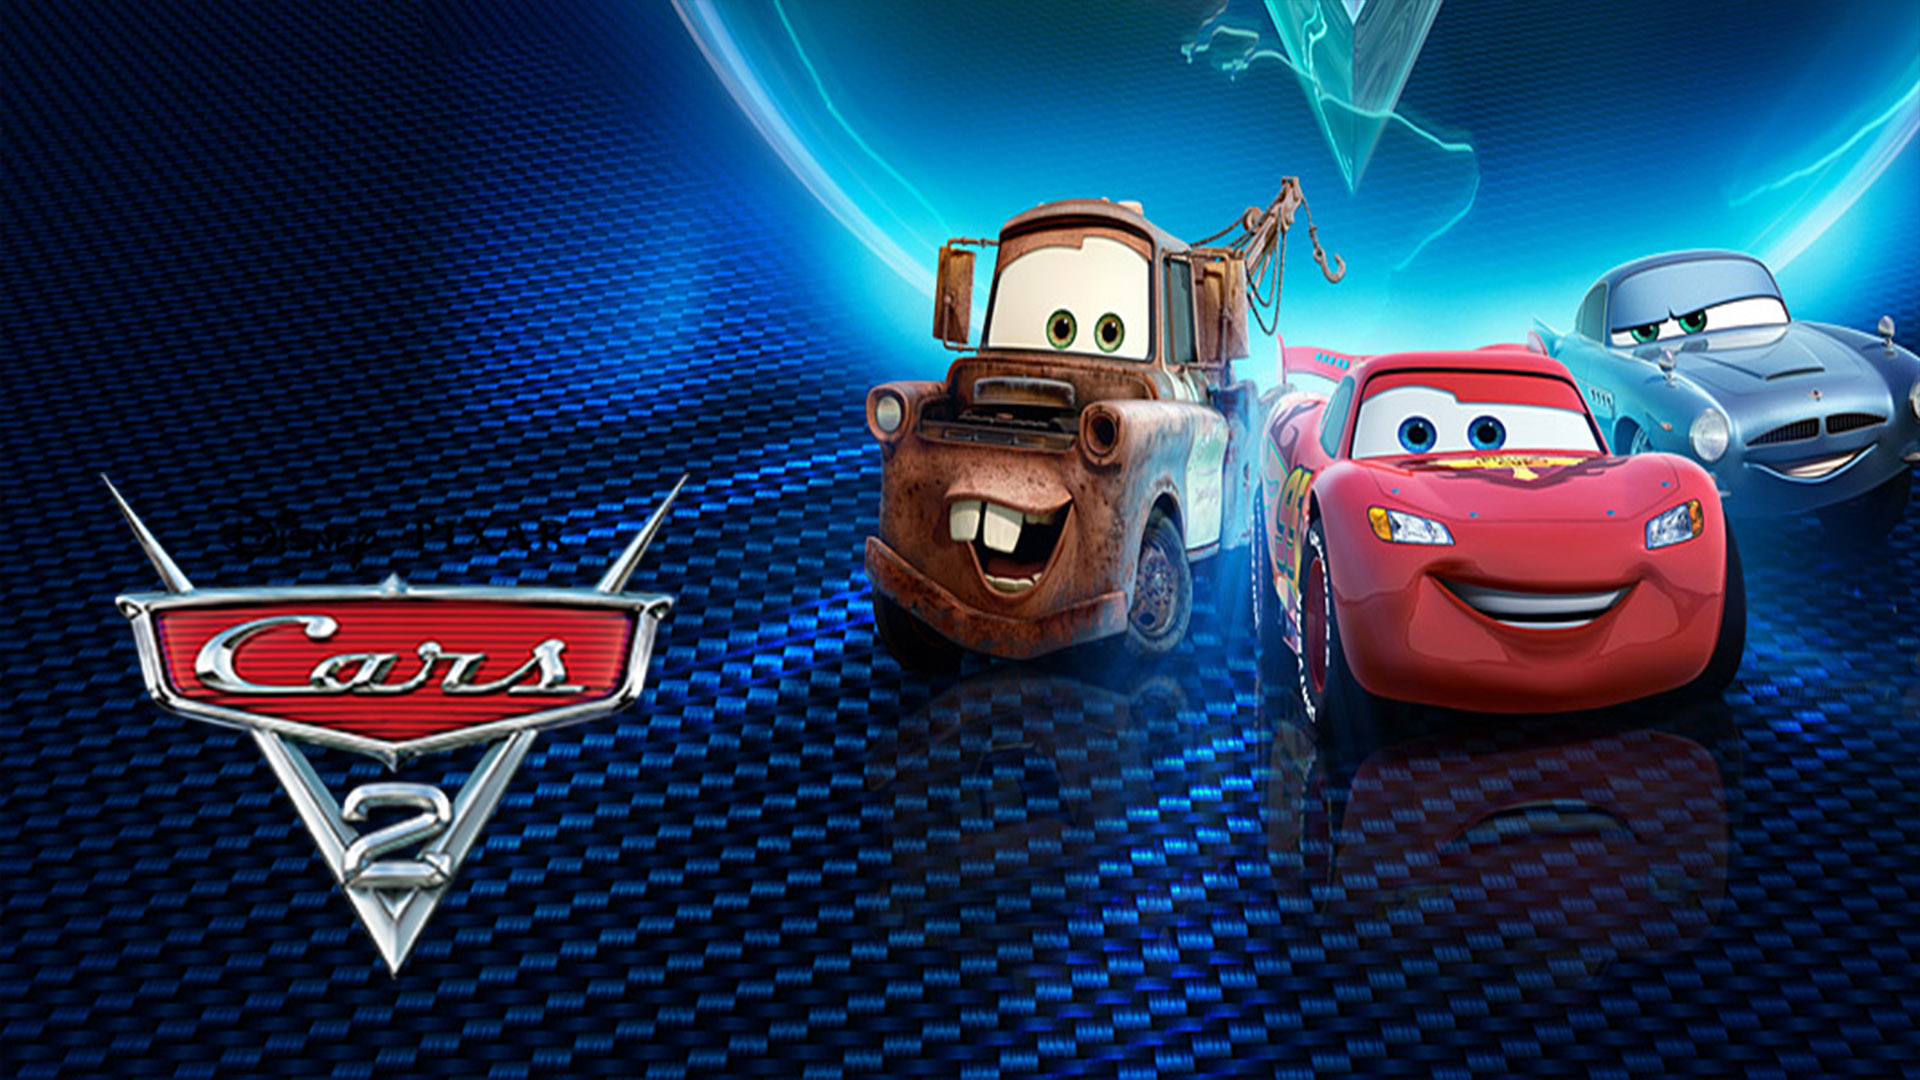 3 cars 2 hd wallpapers background images wallpaper abyss - Cars 3 wallpaper ...